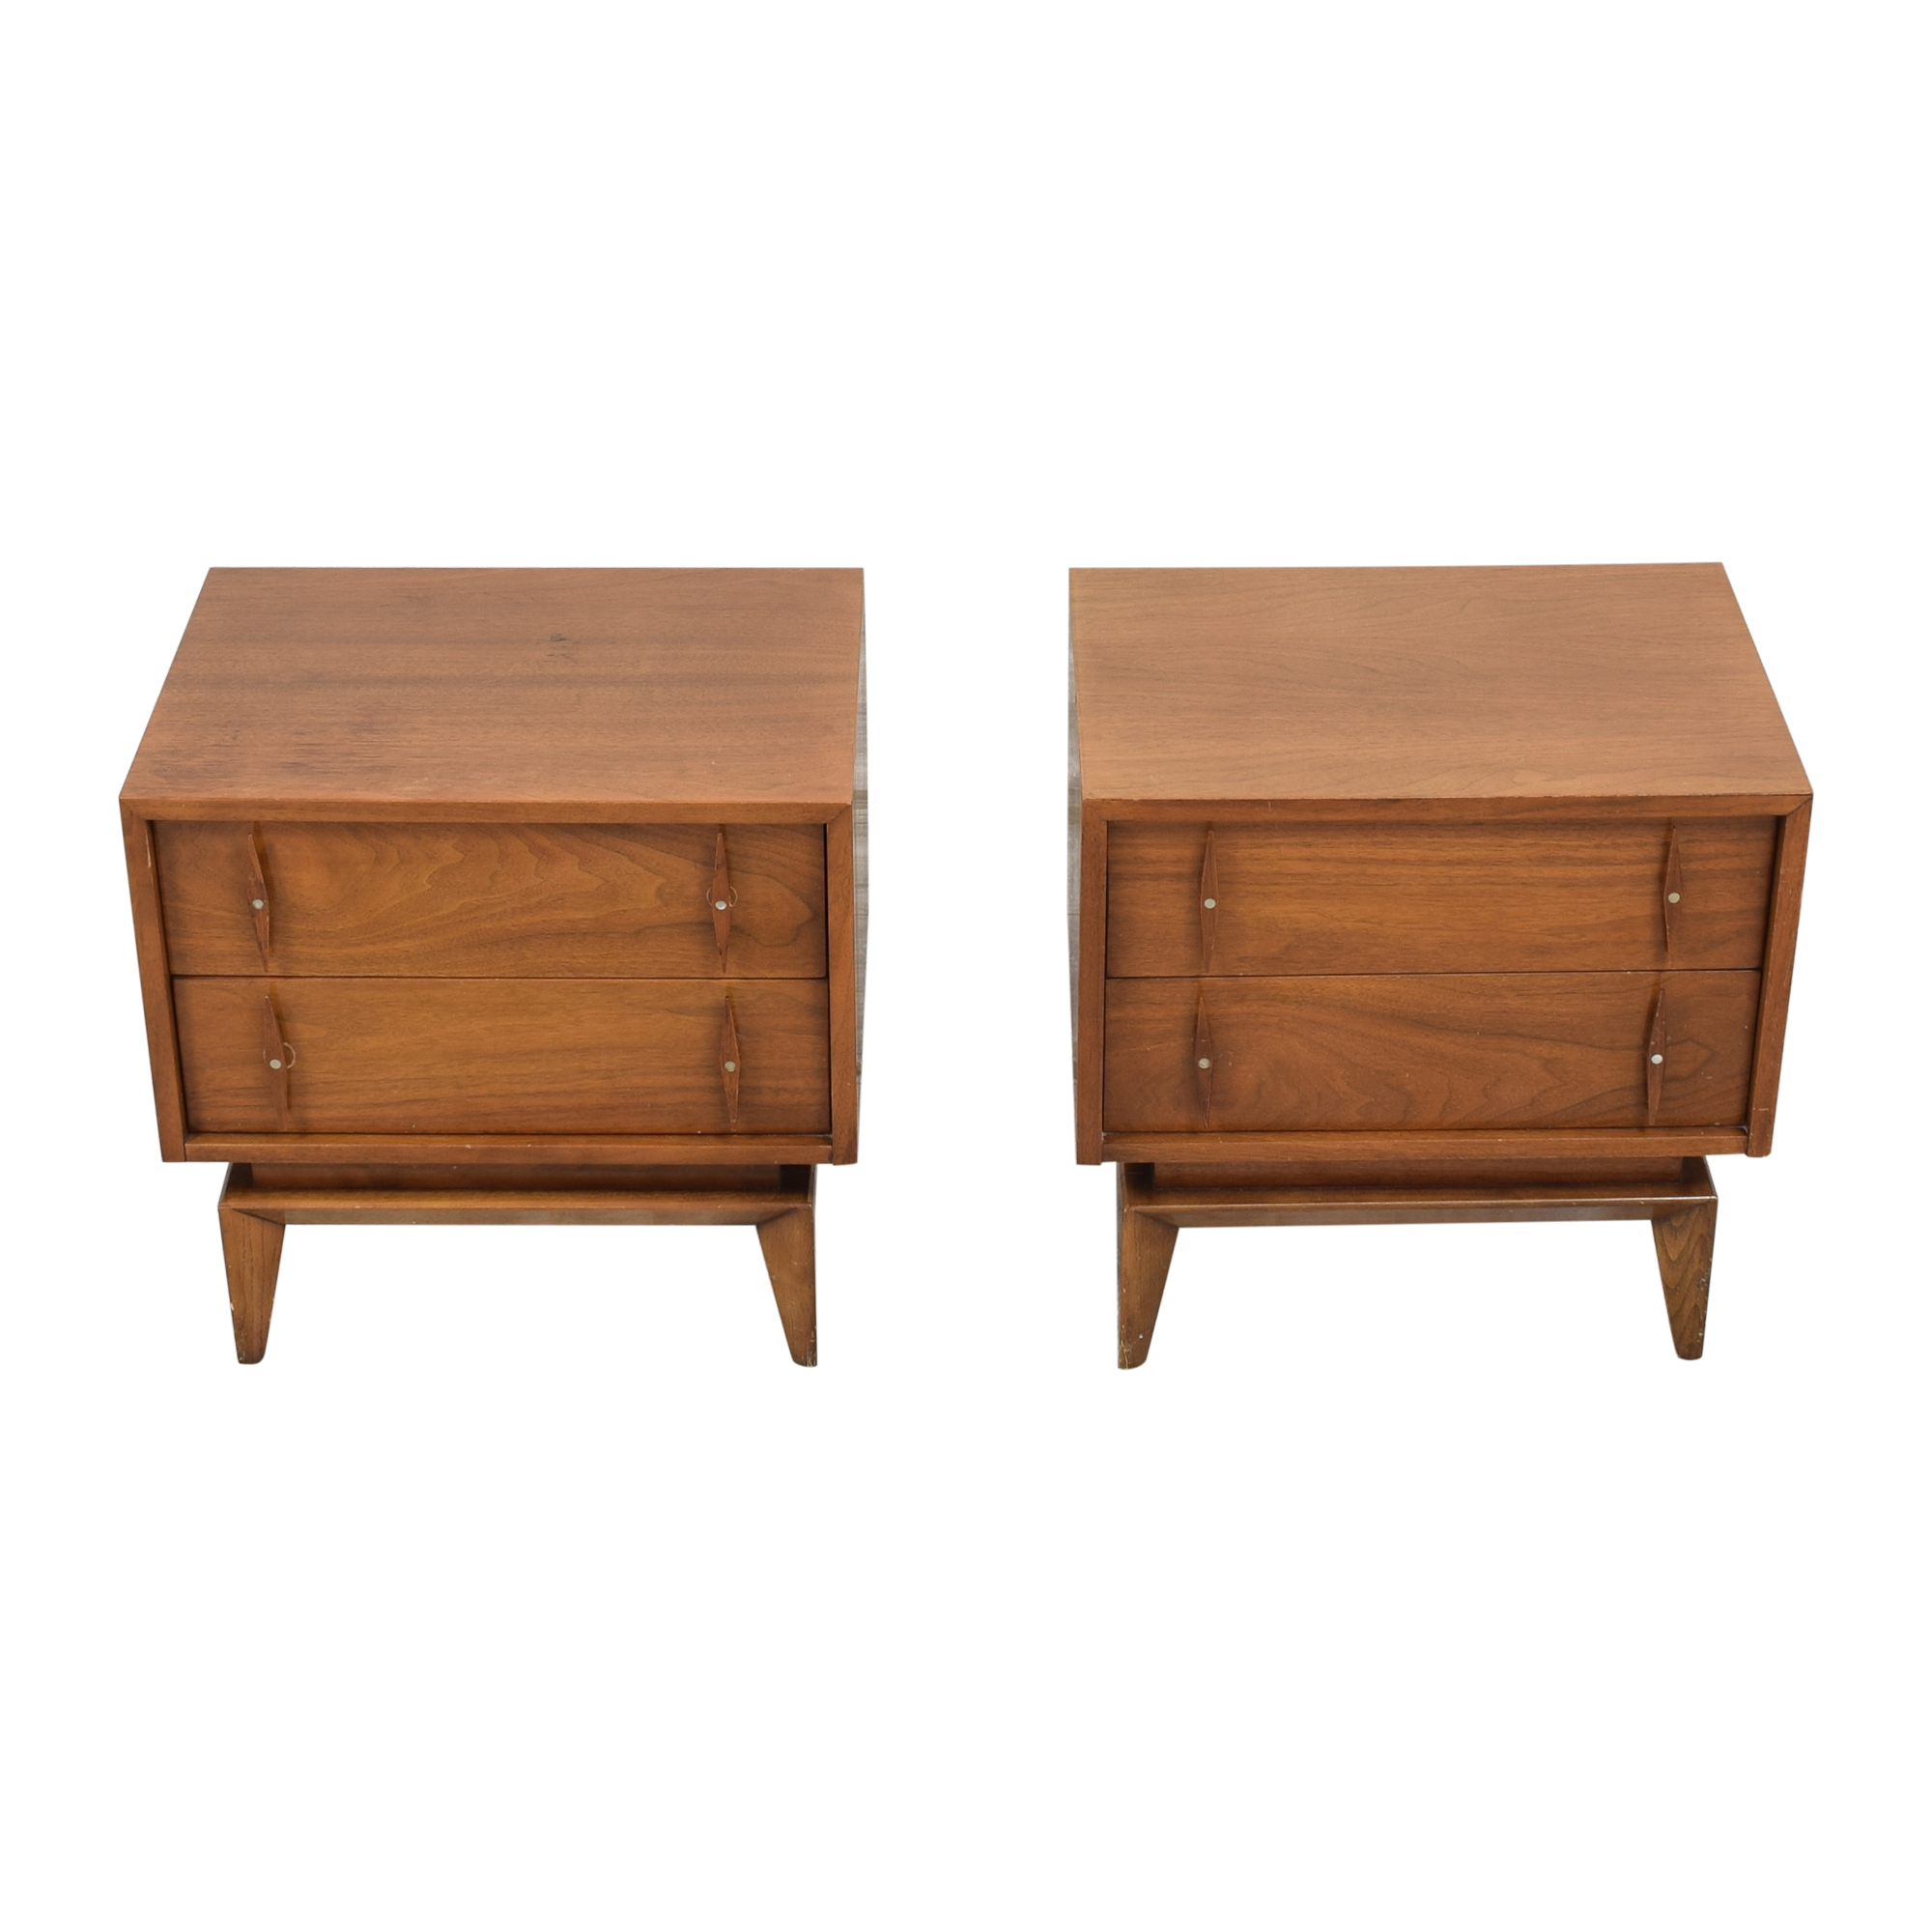 American of Martinsville American of Martinsville Mid-Century Modern End Tables used